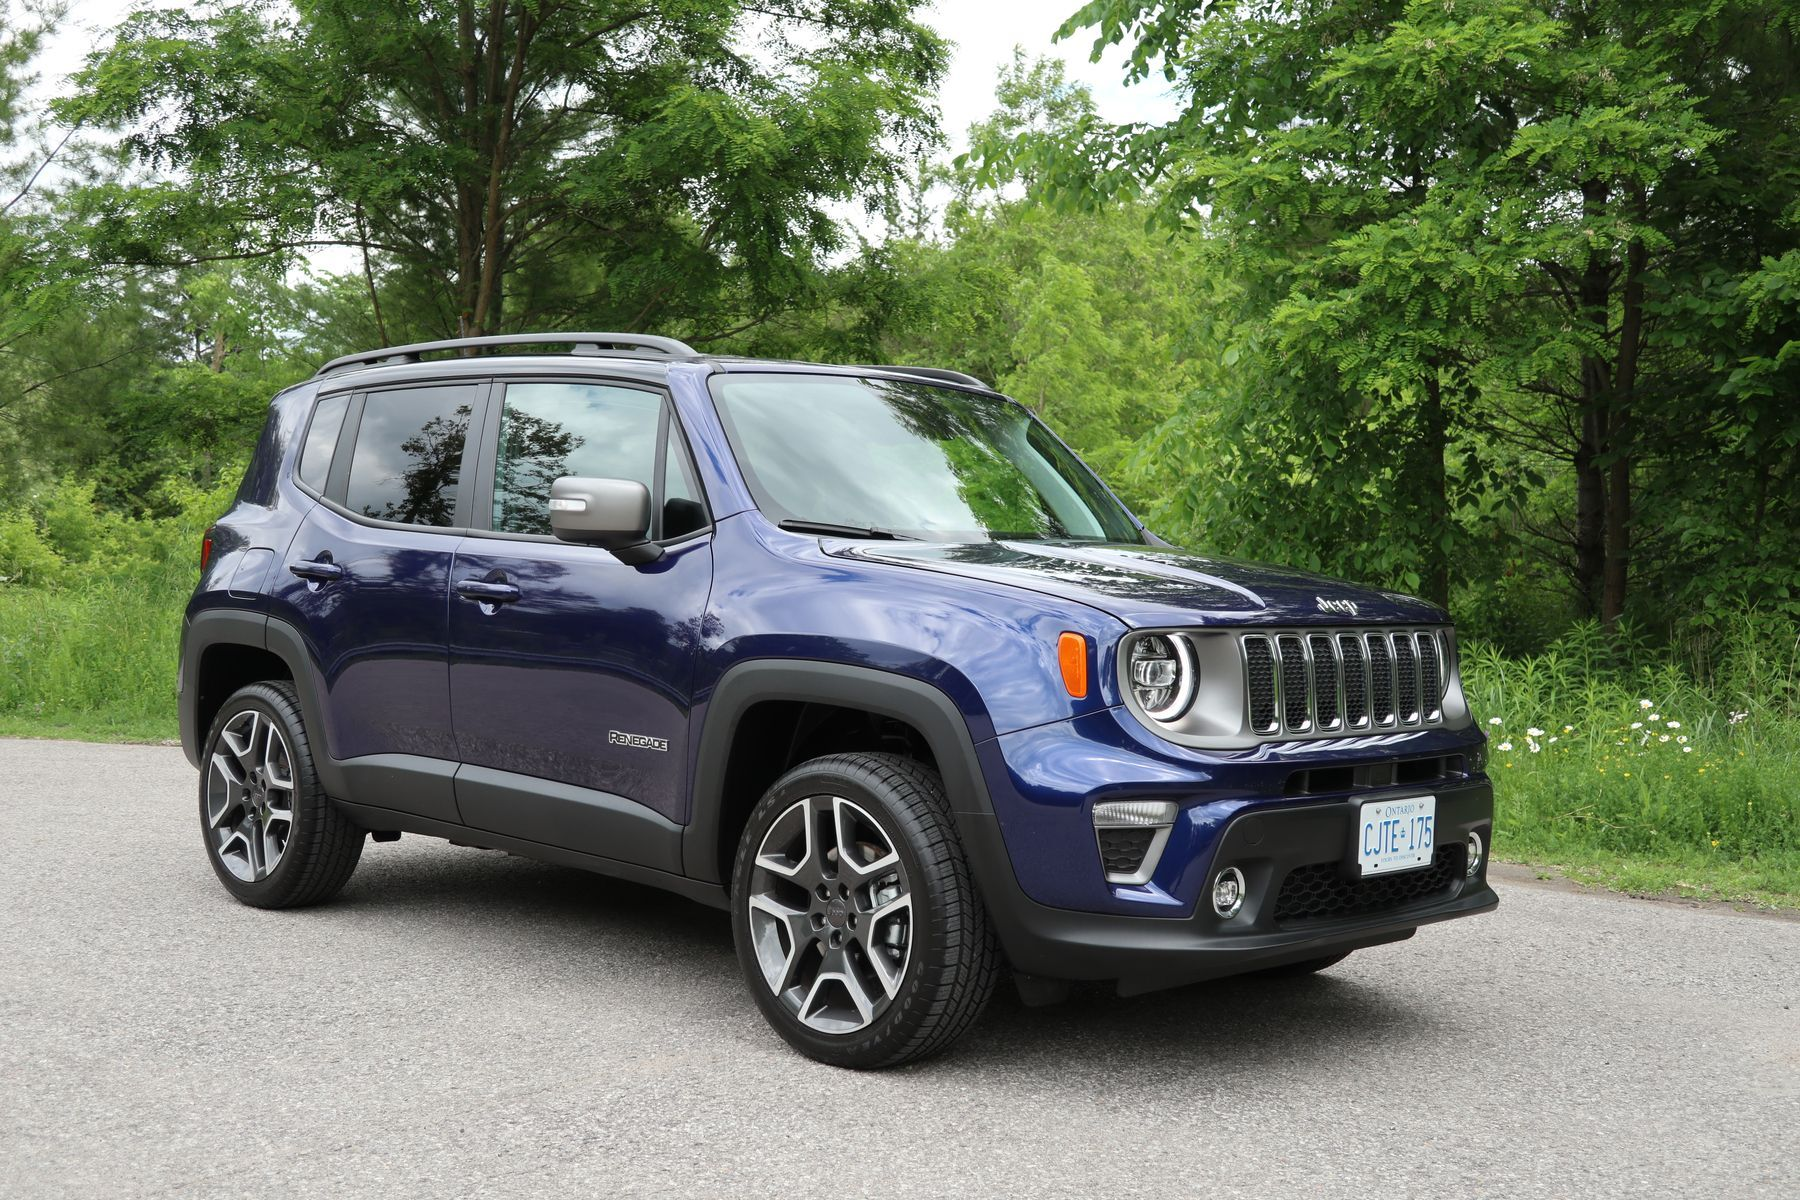 Suv Review 2019 Jeep Renegade Limited 4x4 Suv Reviews Jeep Renegade Suv